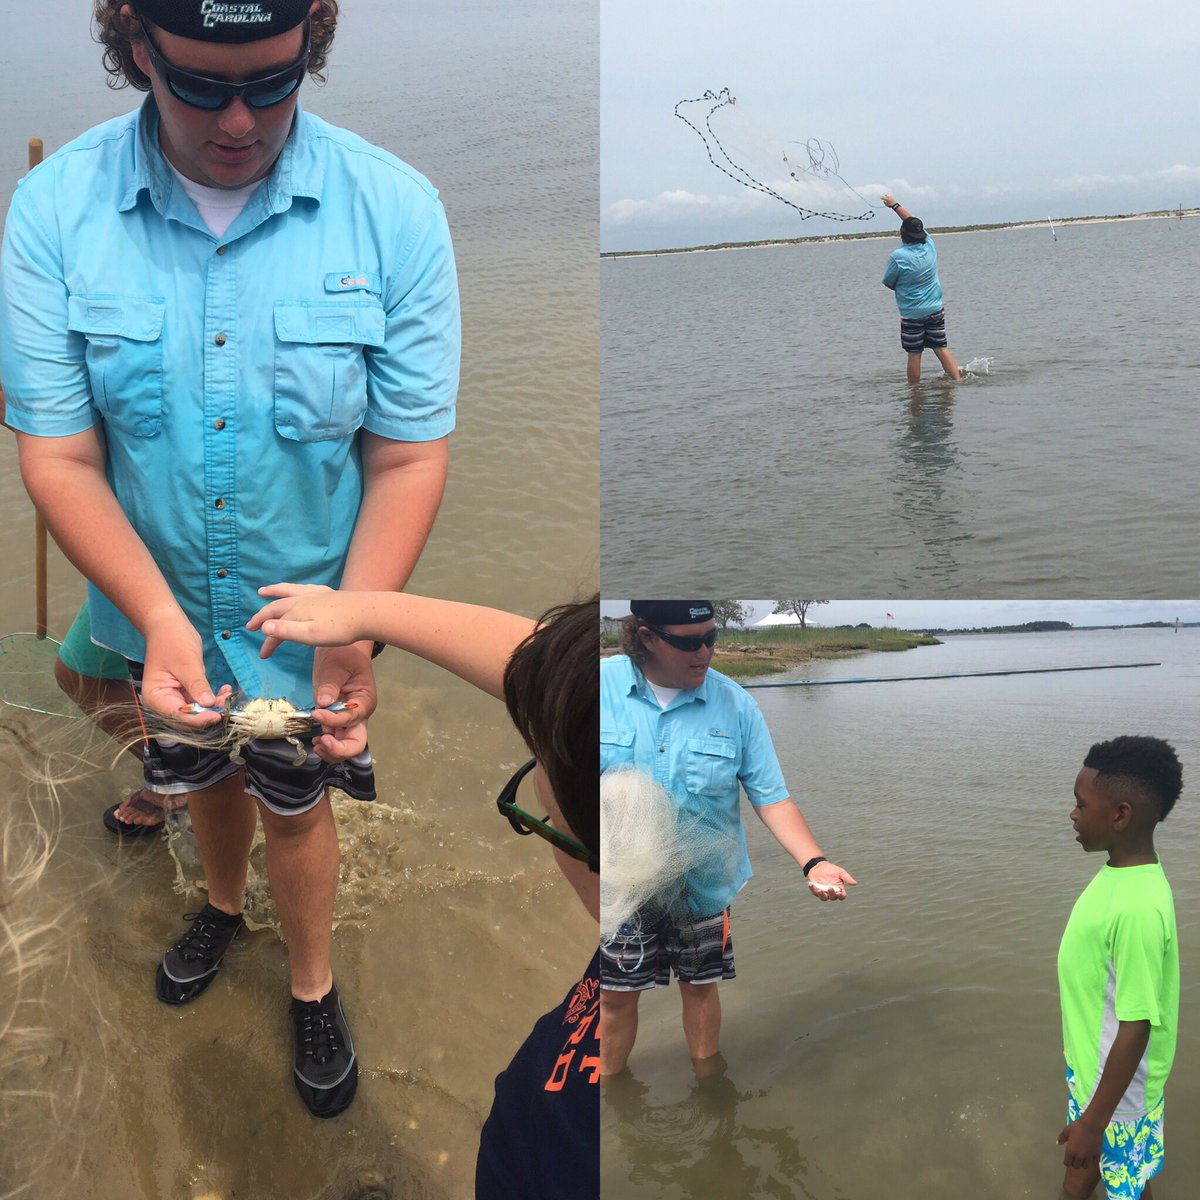 So excited to have local #expert &amp; #marinebiology major from @CCUChanticleers helping  Ss discover new creatures!  #IWCSstem<br>http://pic.twitter.com/OMJKA8q0Lt